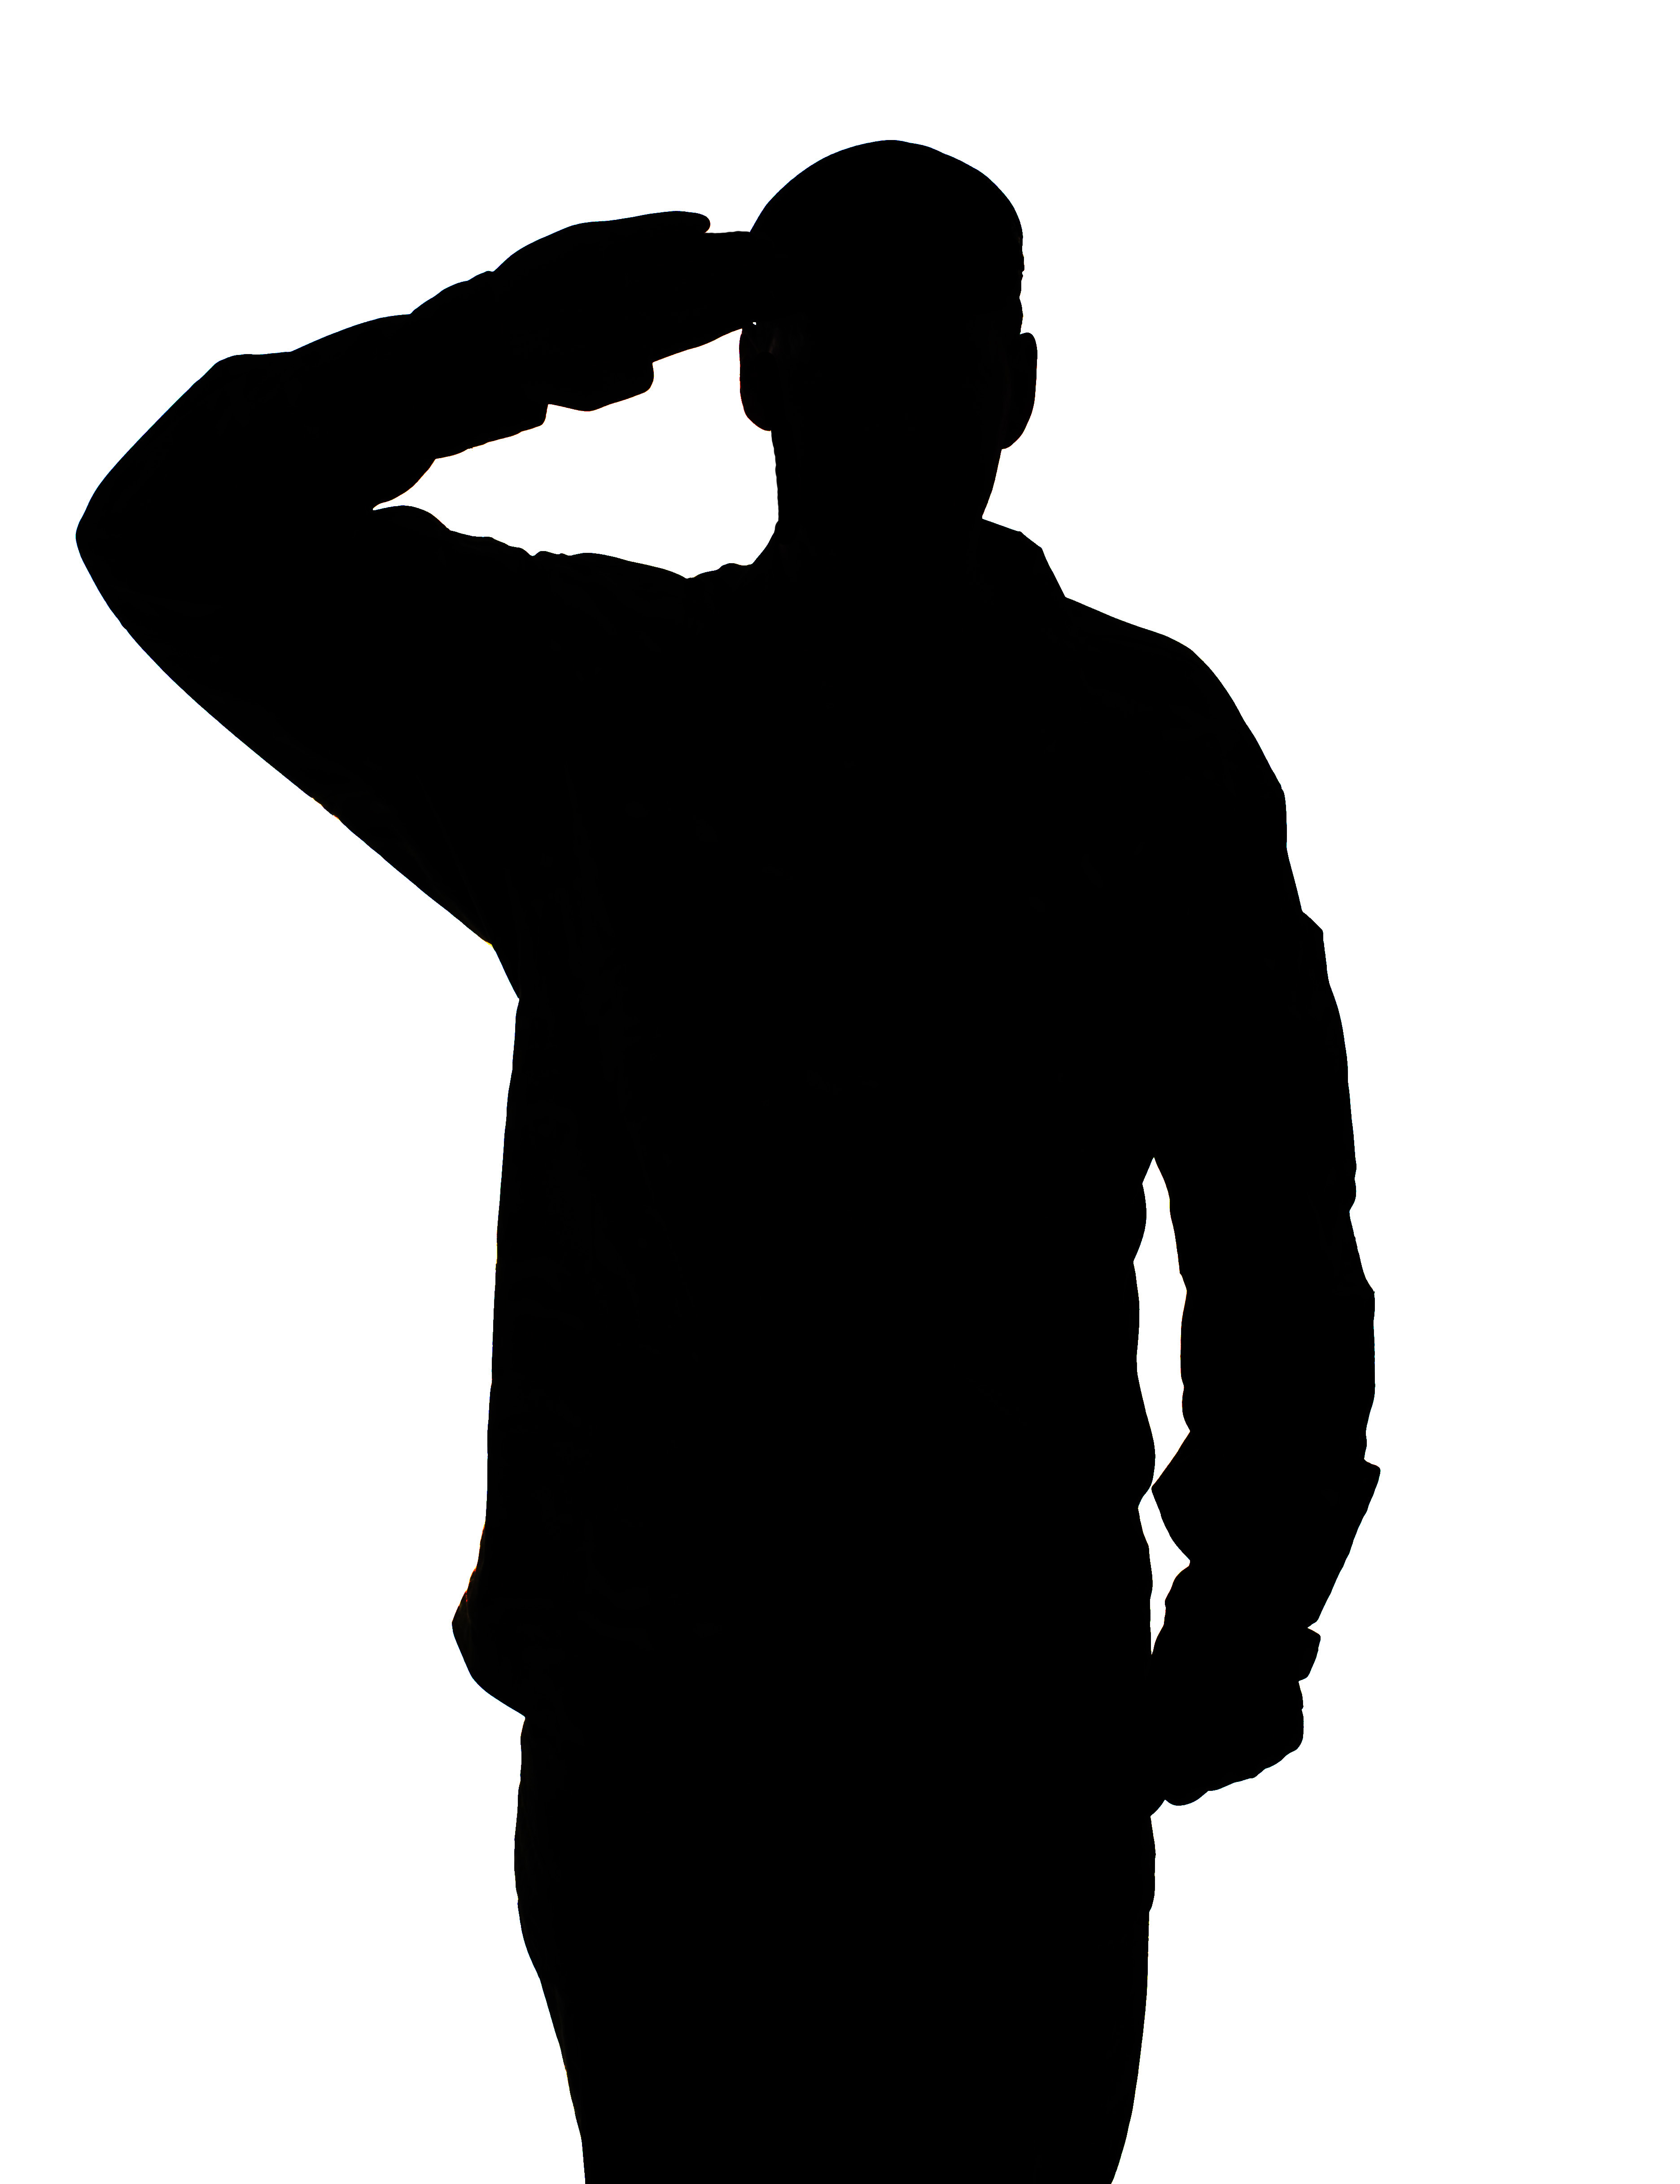 salute%20clipart